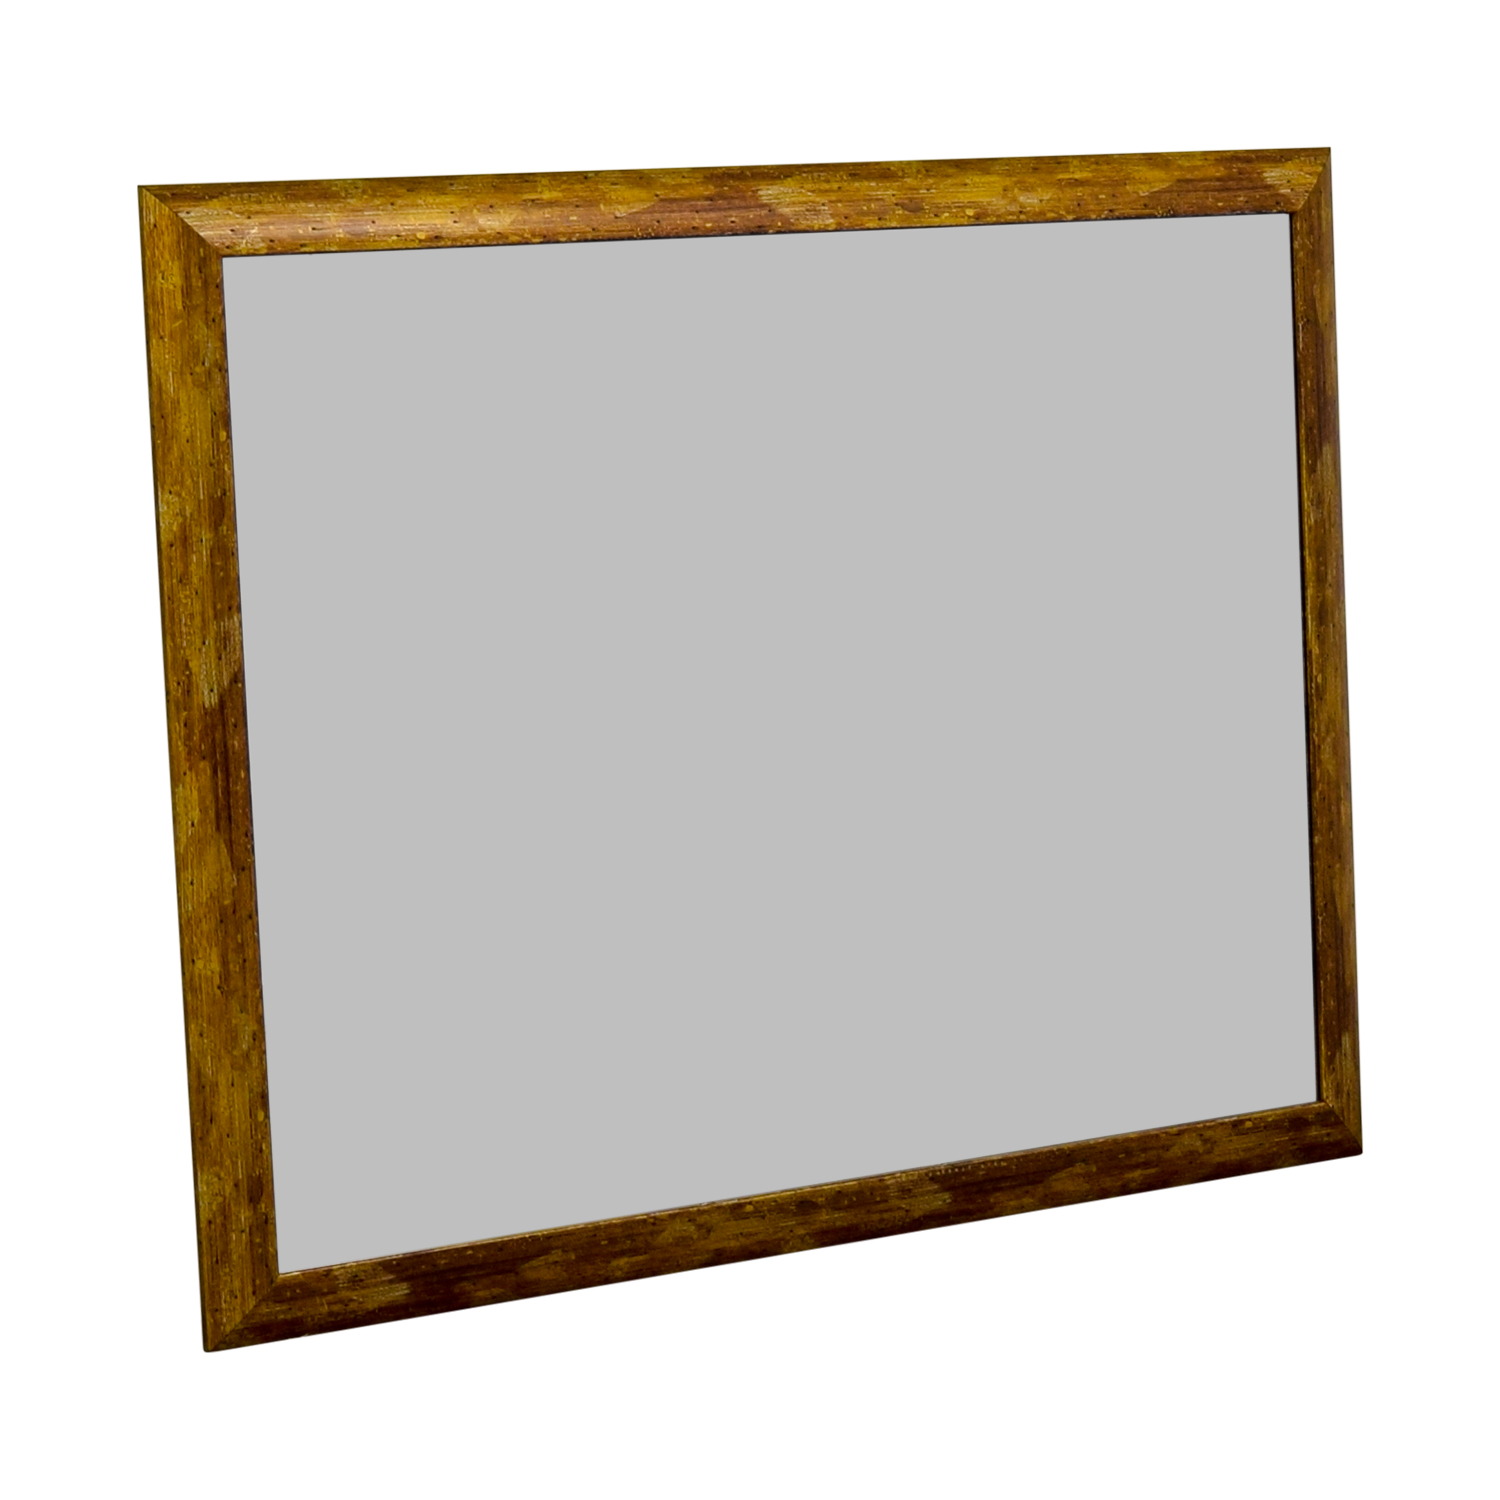 ABC Carpet & Home ABC Carpet & Home Distressed Gold Wall Mirror wood/glass